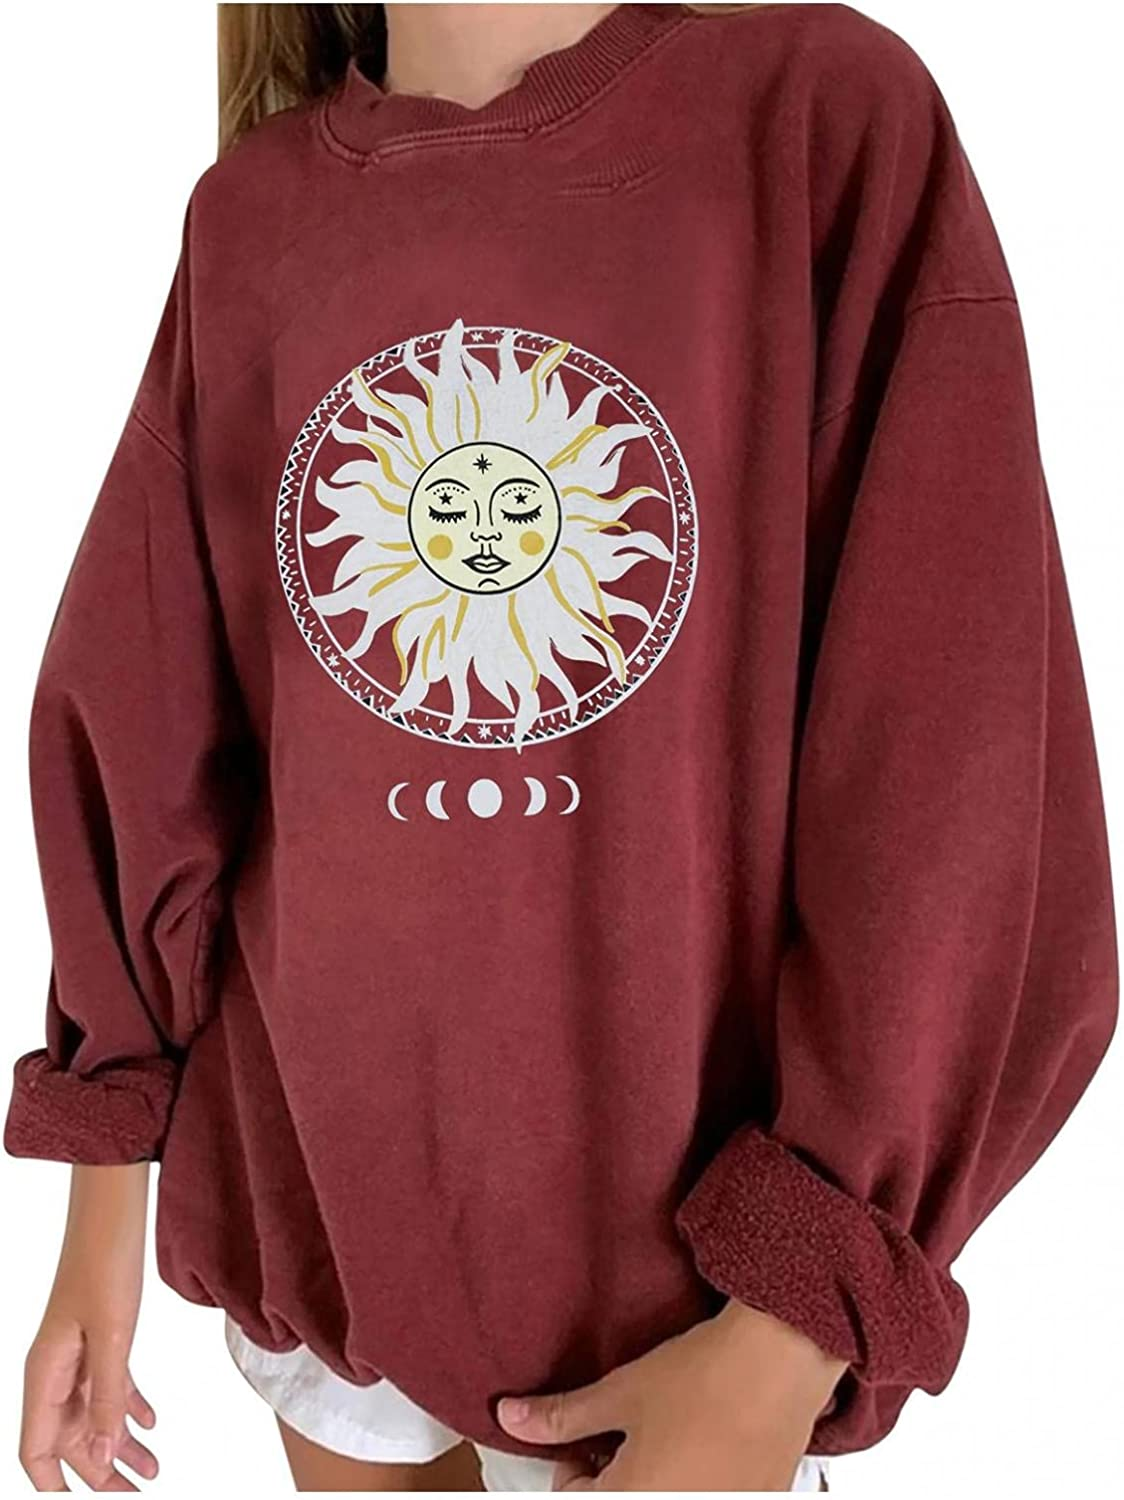 Aniwood Oversized Sweatshirt for Women Casual Long Sleeve Moon and Sun Print Loose Crewneck Pullover Sweaters Tops Shirts